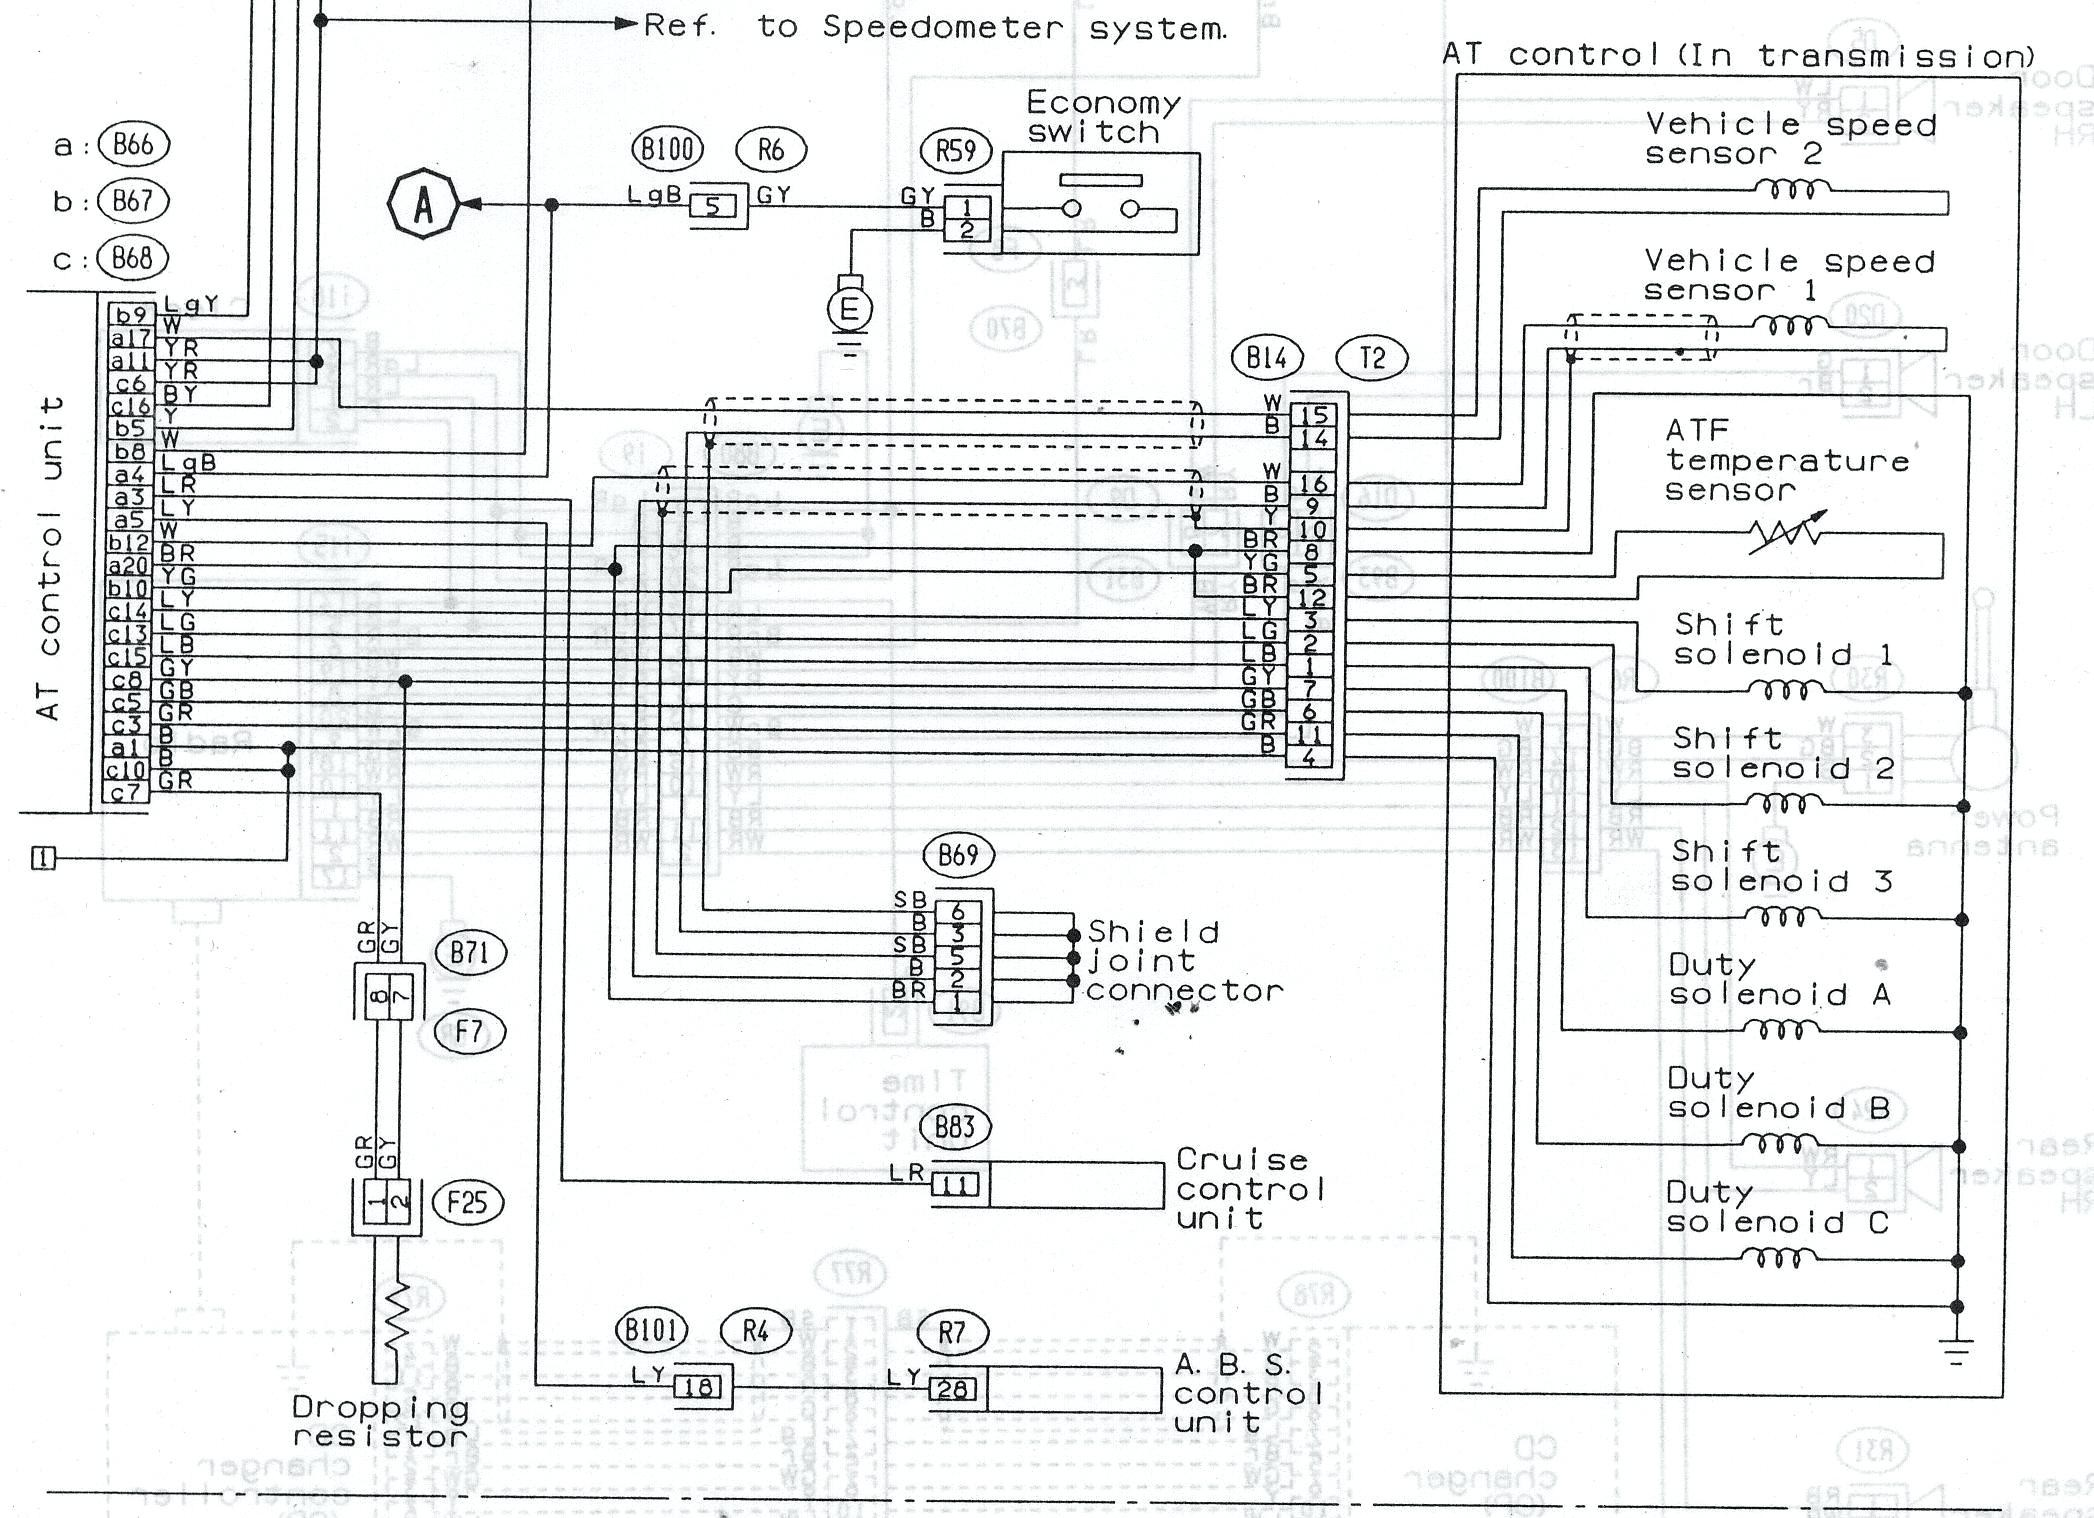 1996 subaru legacy outback engine diagram